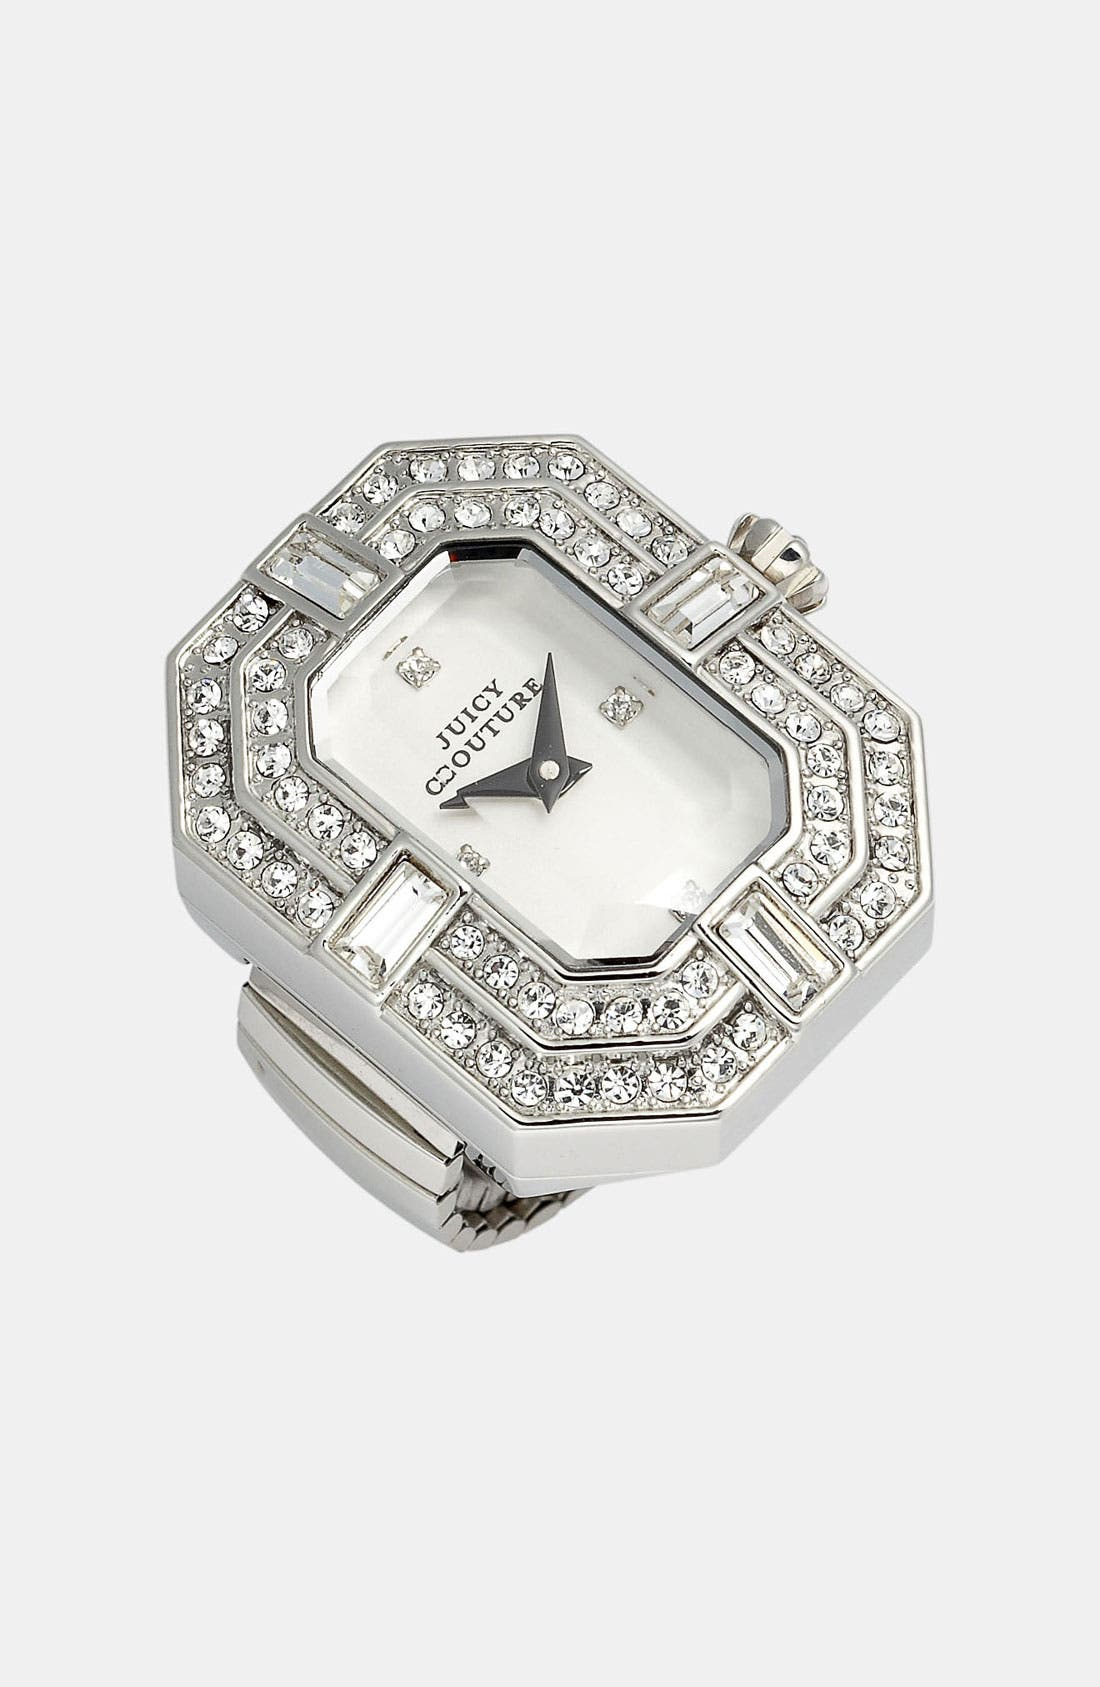 Main Image - Juicy Couture 'Marianne' Watch Dial Cocktail Ring, 26mm x 21mm